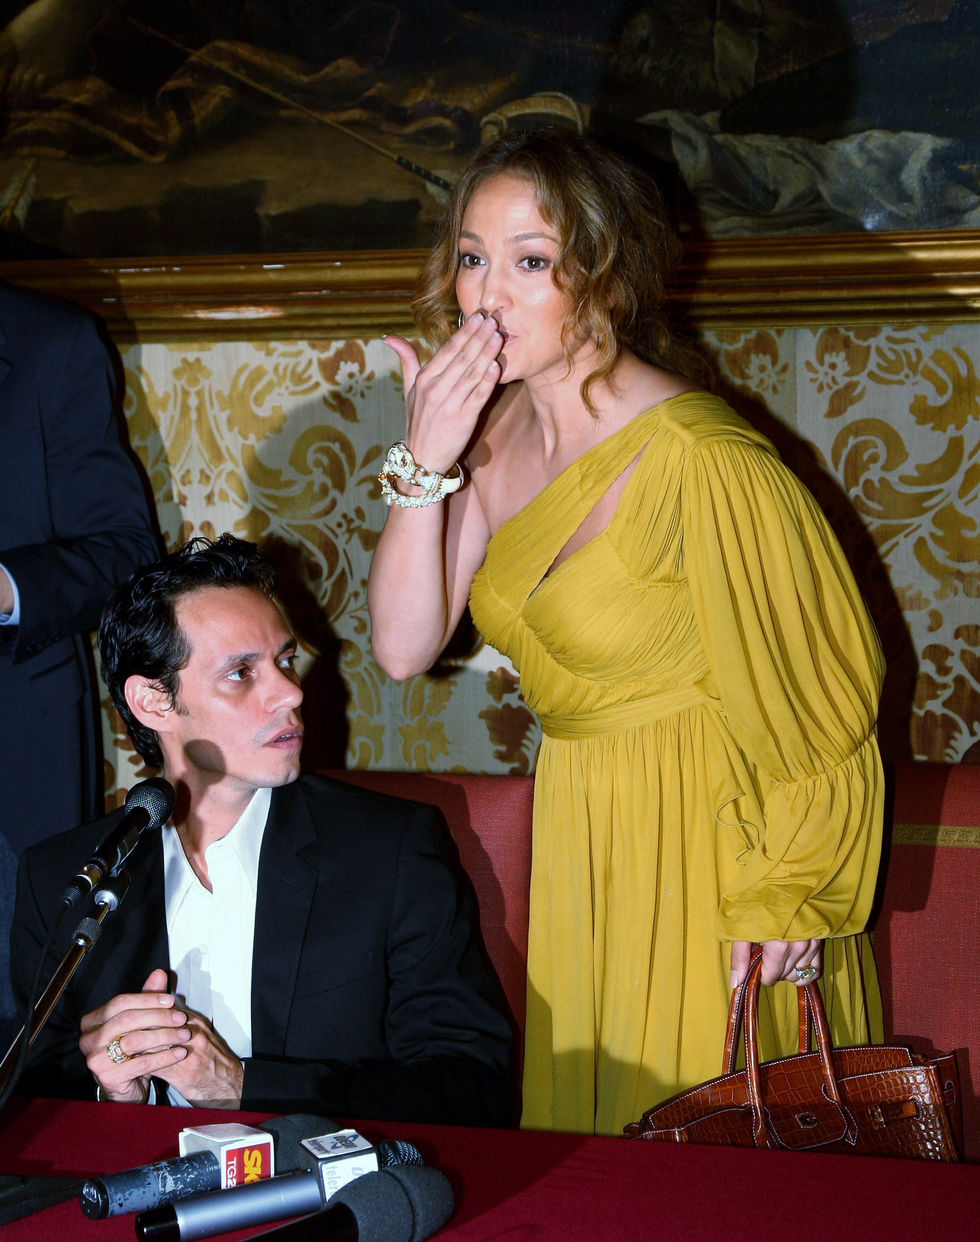 jennifer-lopez-marc-anthony-receives-honorary-award-from-milan-town-council-01